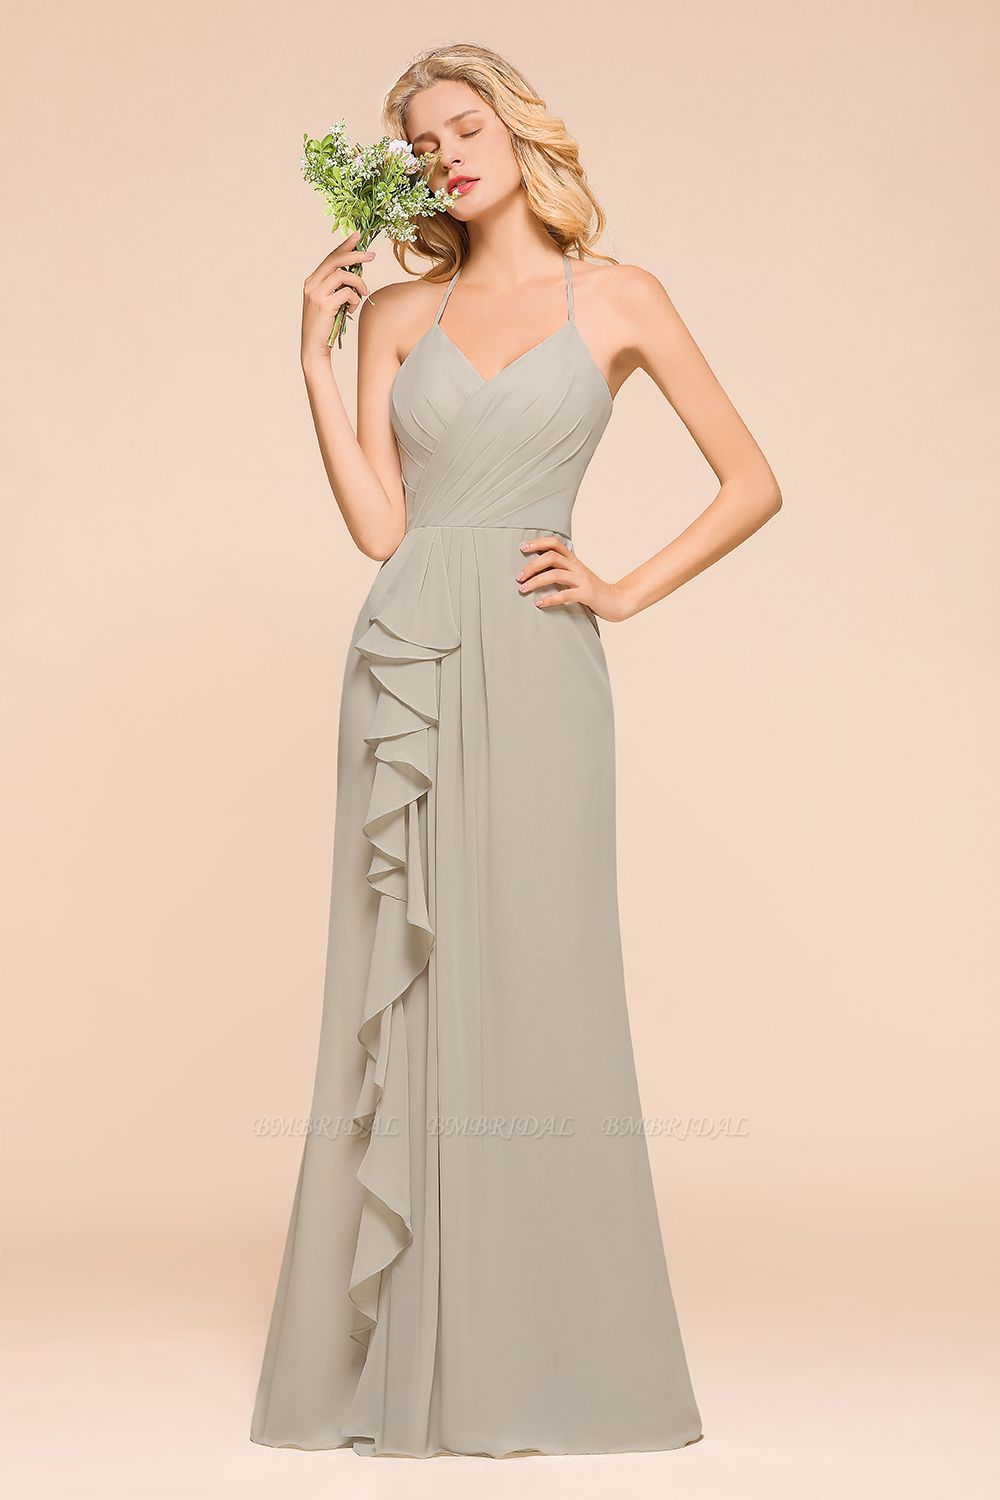 Bridesmaid dresses | BM Bridal